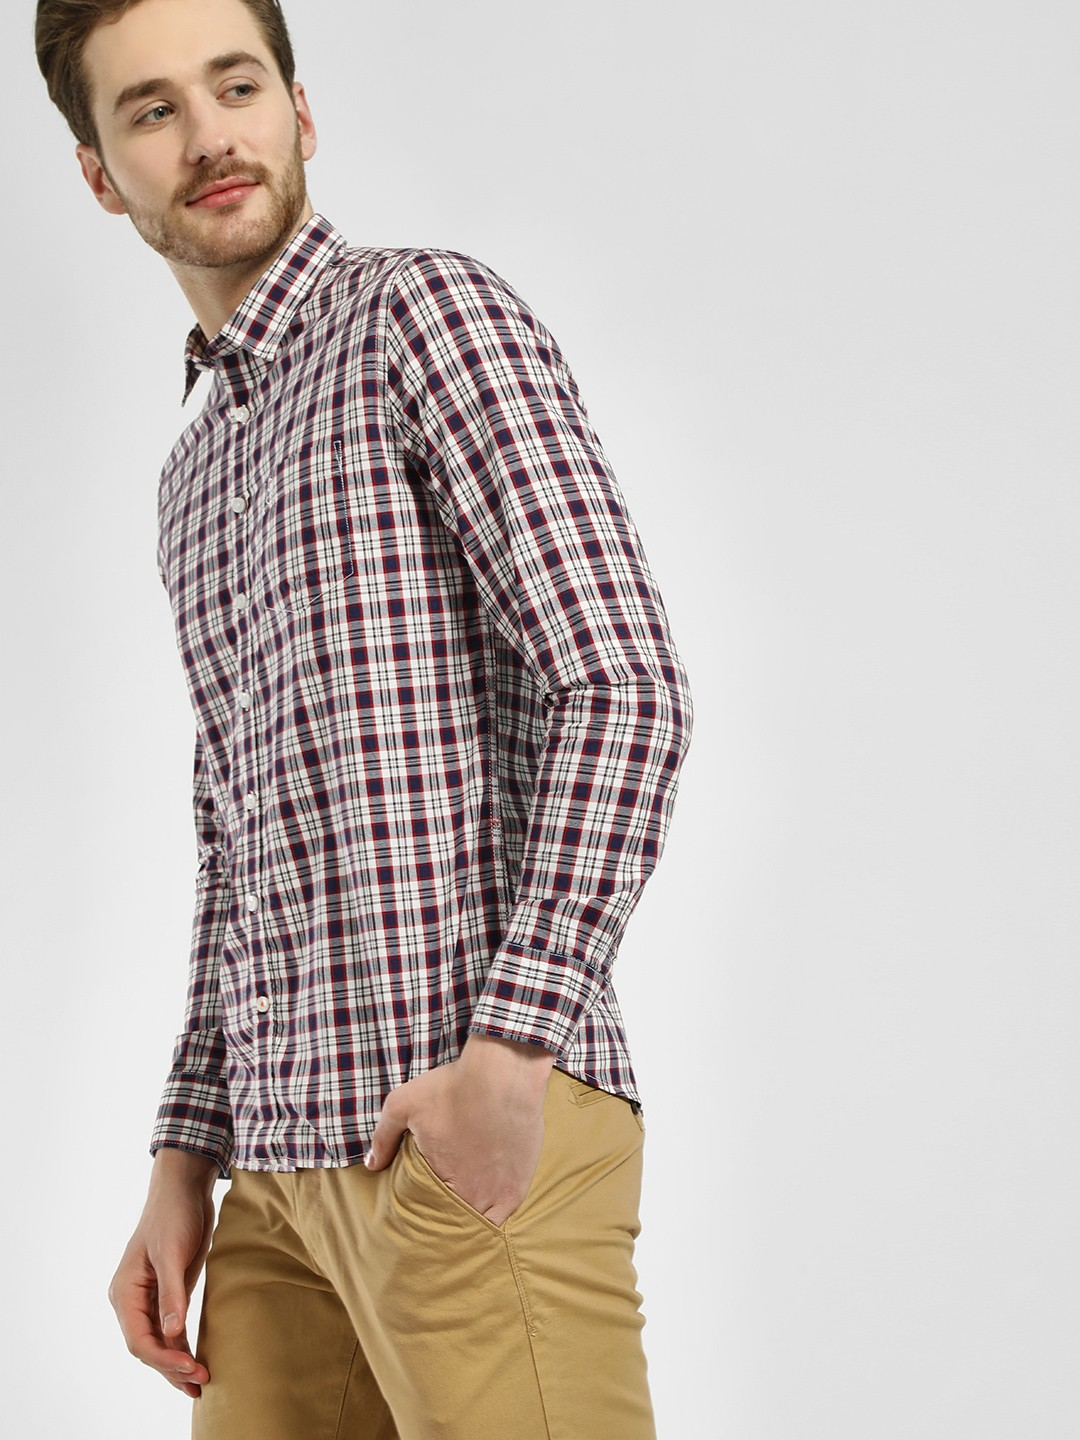 SCULLERS Blue Plaid Check Slim Fit Casual Shirt 1